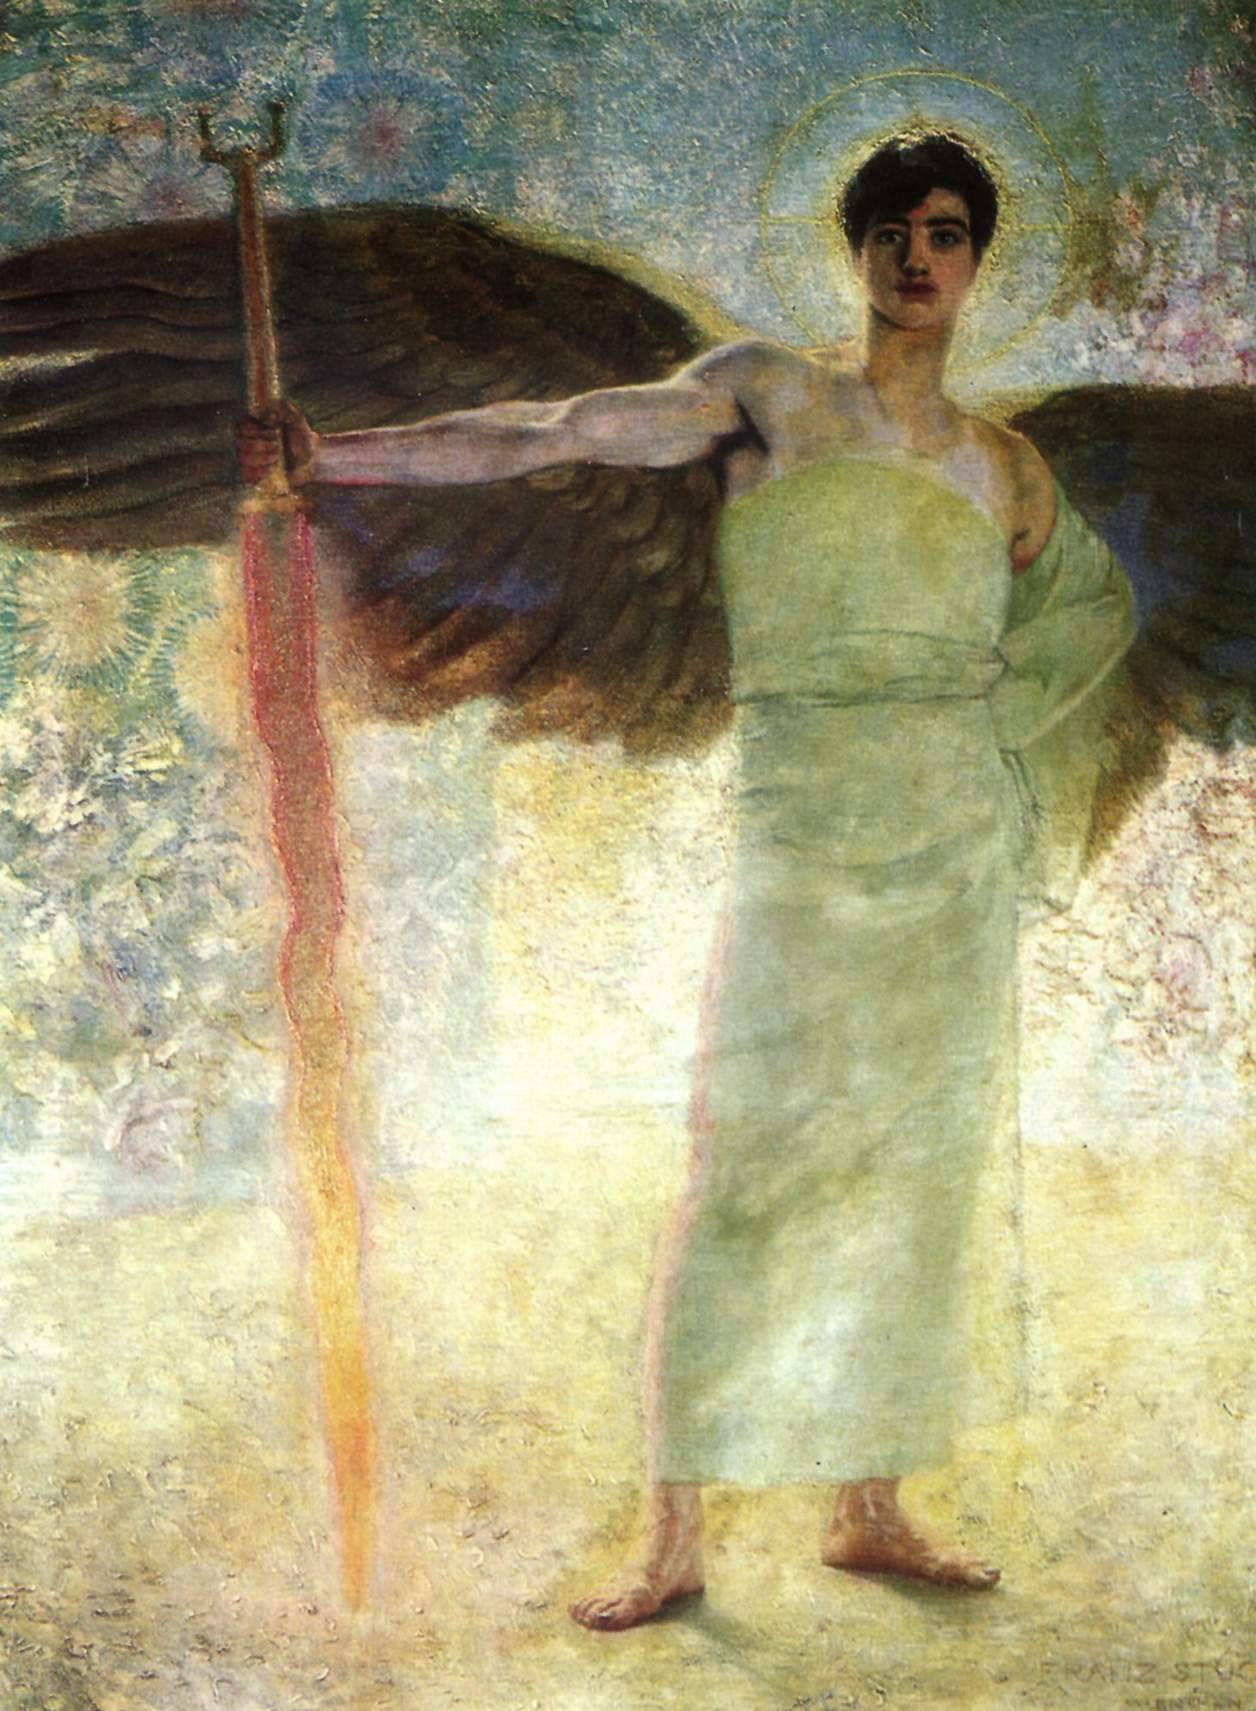 cavetocanvas:  Franz von Stuck, Angel with the Flaming Sword, 1889